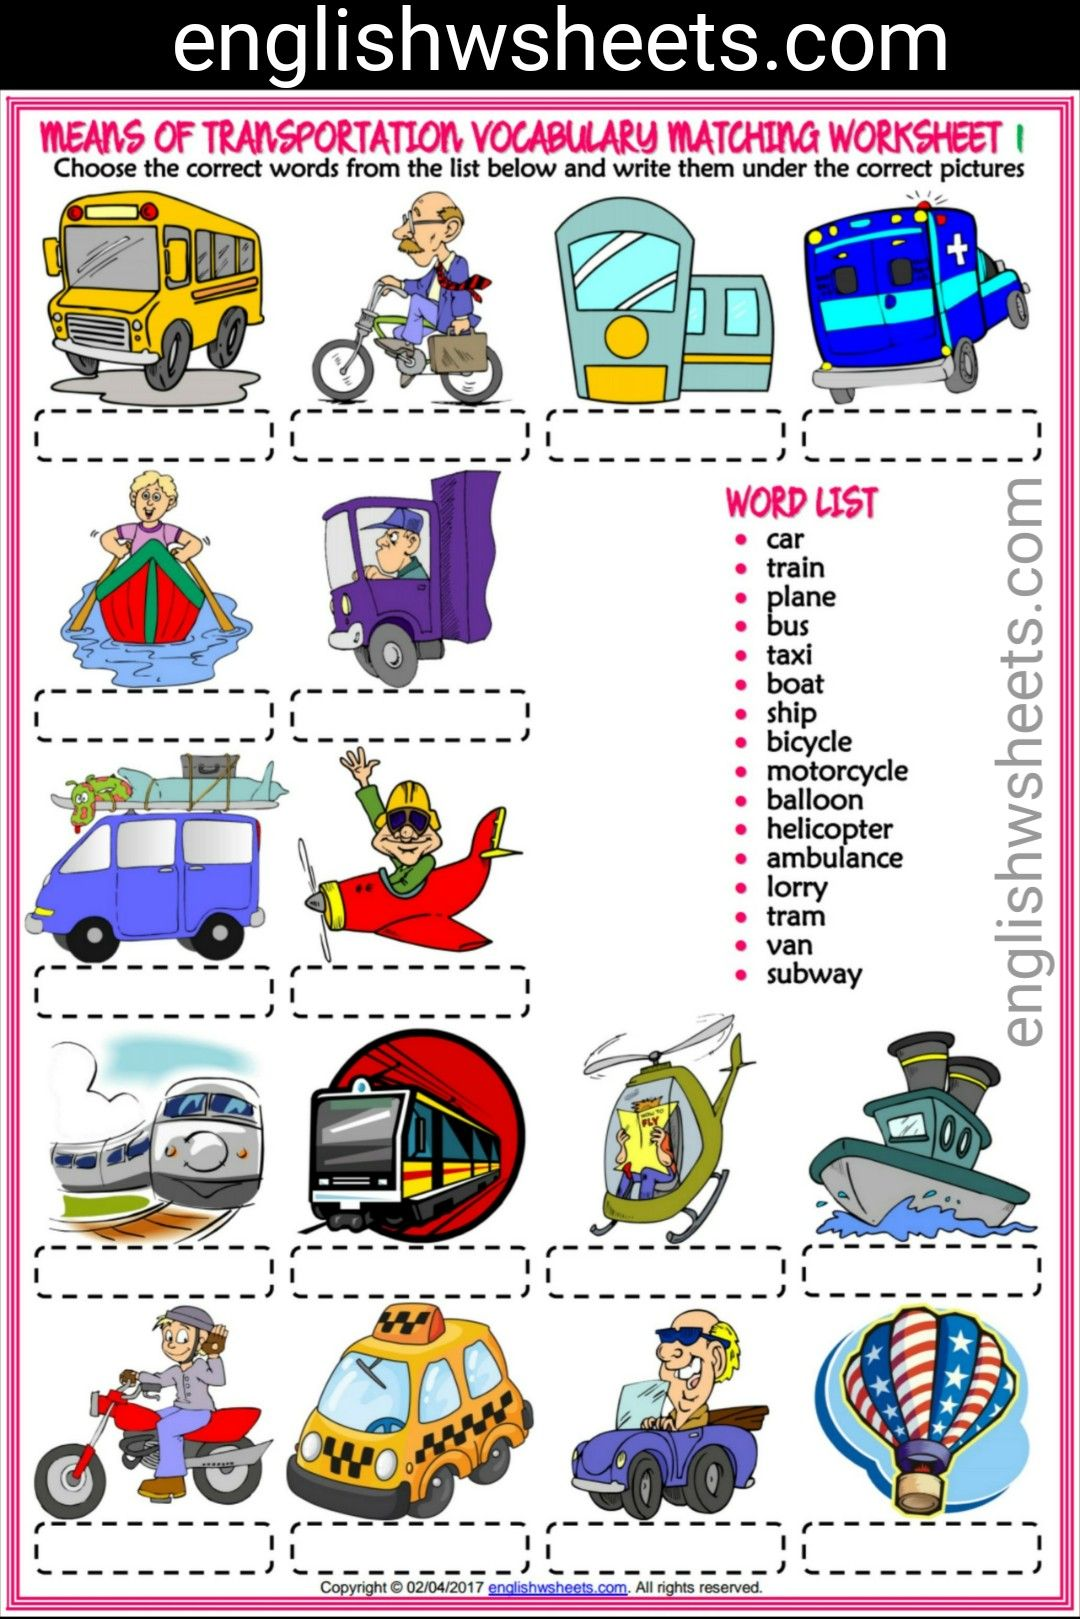 Means Of Transportation Esl Printable Vocabulary Matching